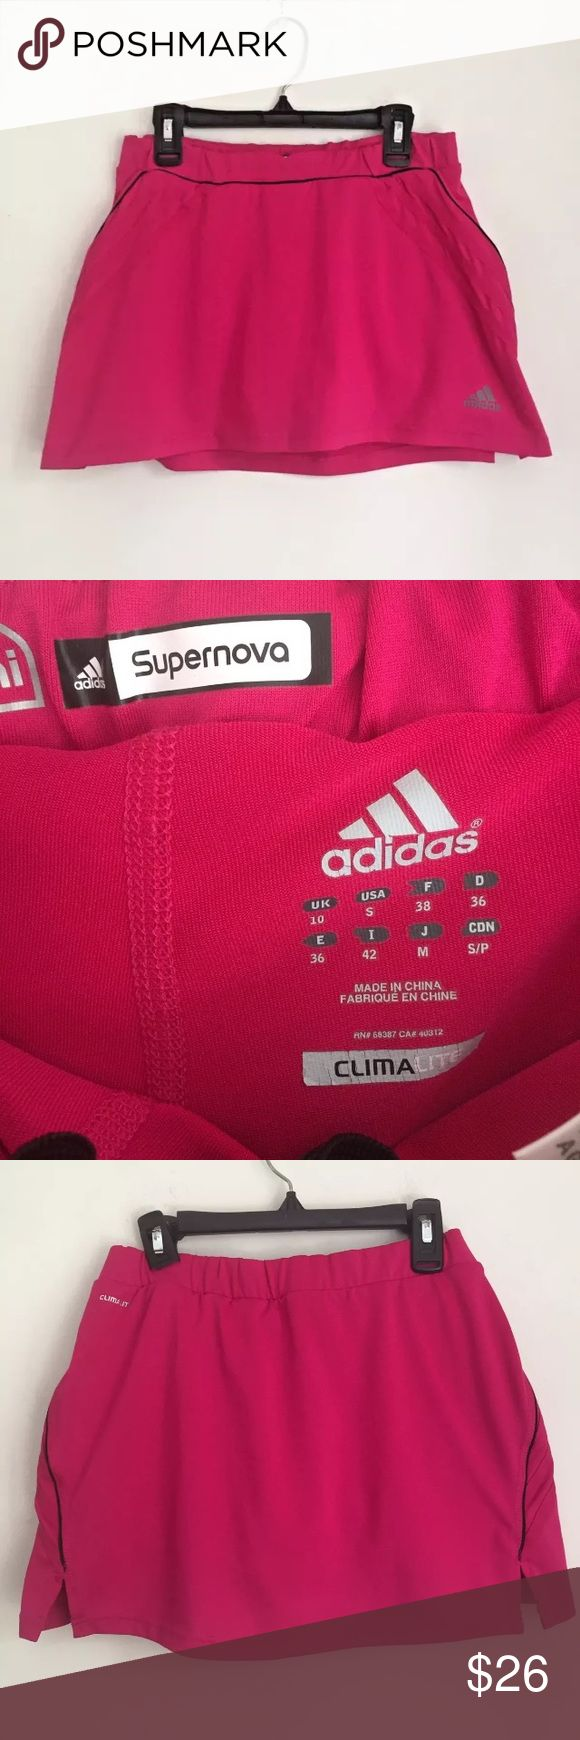 "Adidas Super Nova Pink Tennis Skirt Adidas Supernova ClimaLite Pink Golf Tennis Skirt Skort   Shorts Underneath  Pre-owned in great condition with no flaws  Women's Size S  Measures 14"" across waist laying flat. Length is 12"" adidas Shorts Skorts"